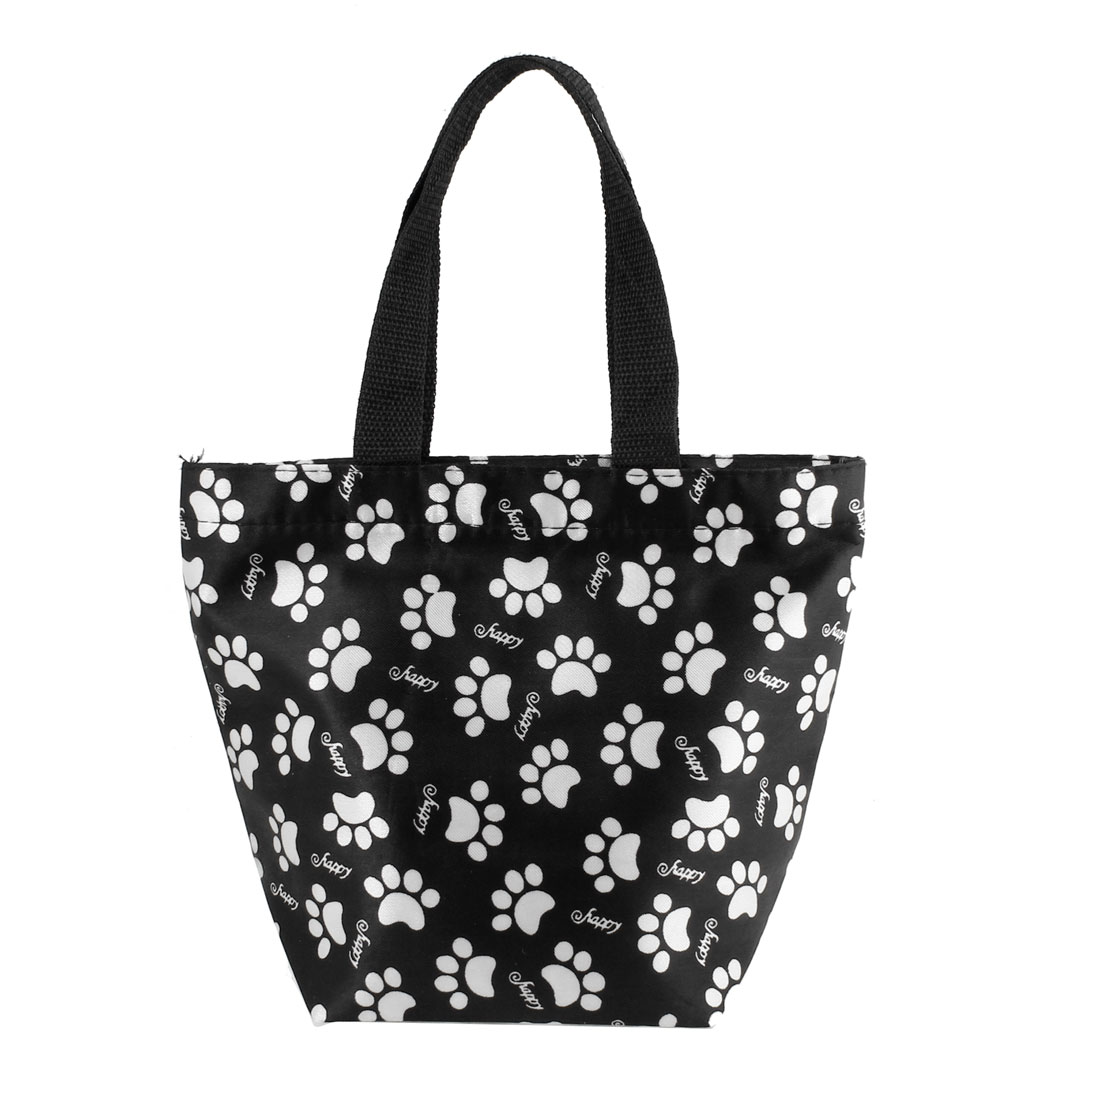 Portable White Paw Pattern Non Woven Shopping Handbag Black